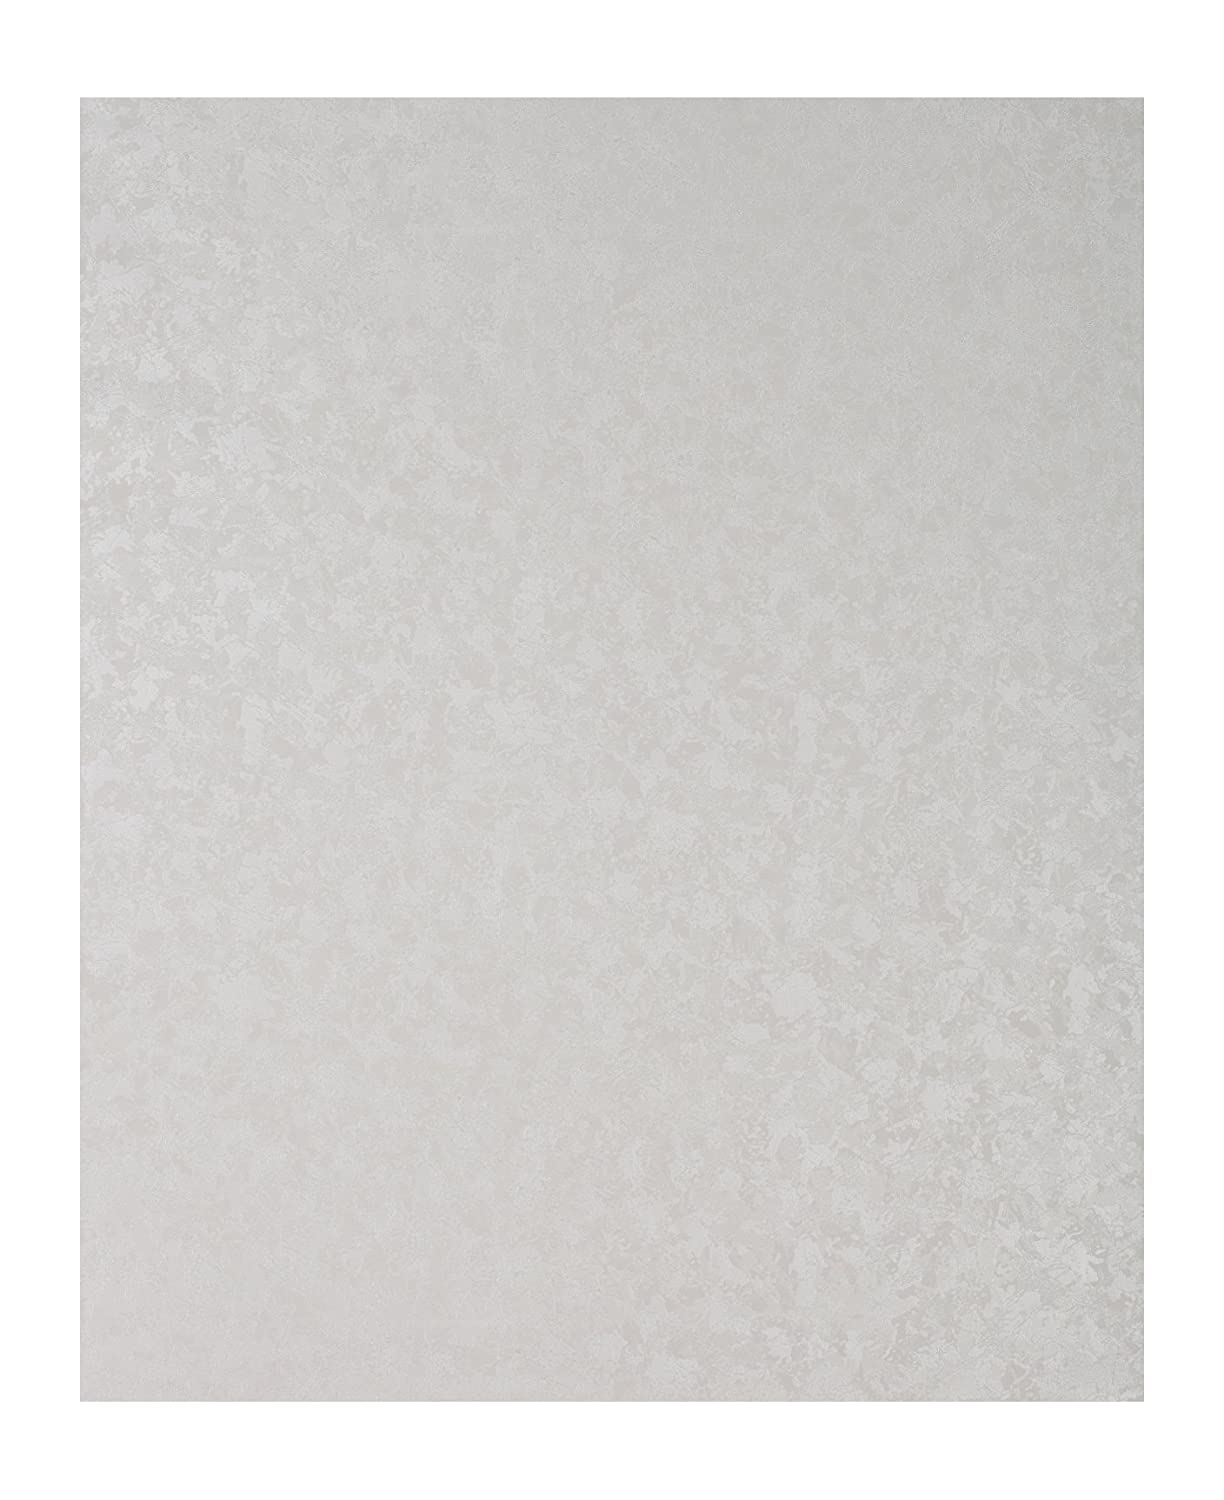 York Wallcoverings NB181700SMP Color Library Stuccoed Texture 8 x 10 Wallpaper Memo Sample Ice White